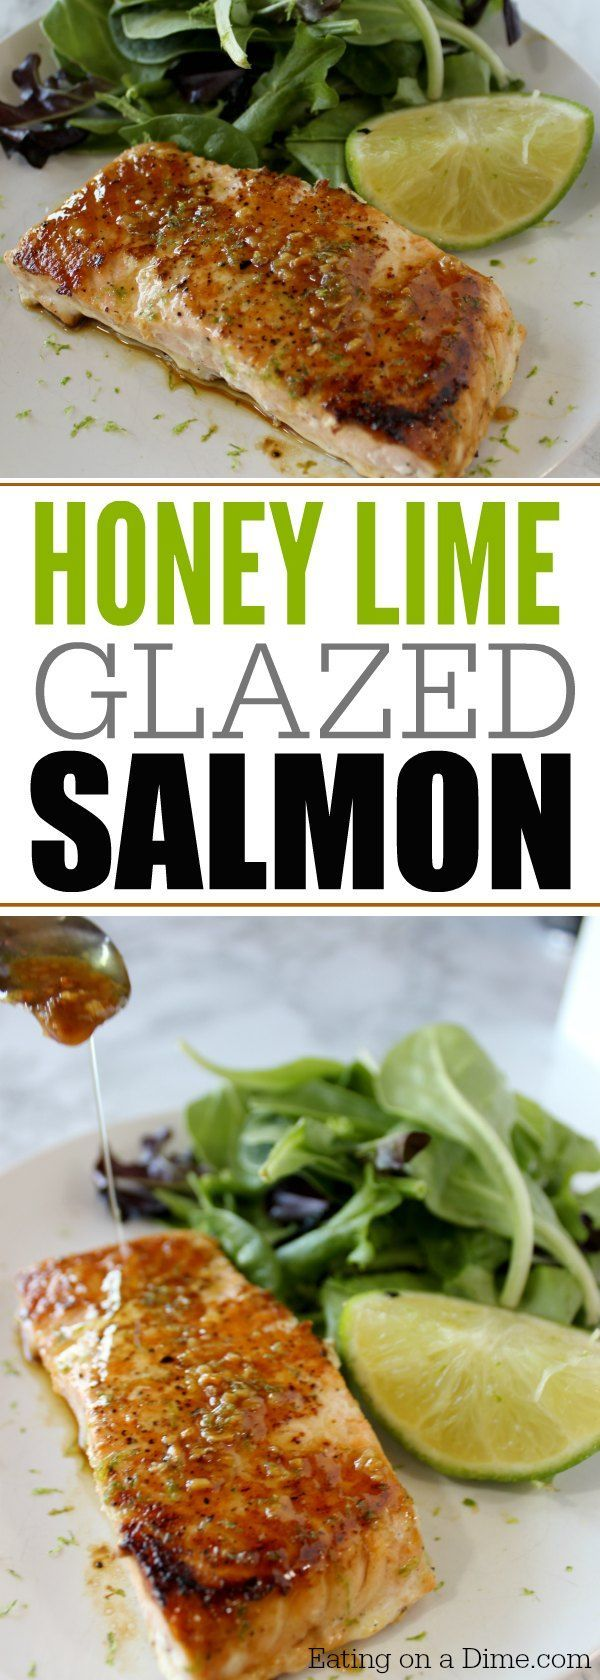 Honey Glazed Salmon Recipe - Eating on a Dime